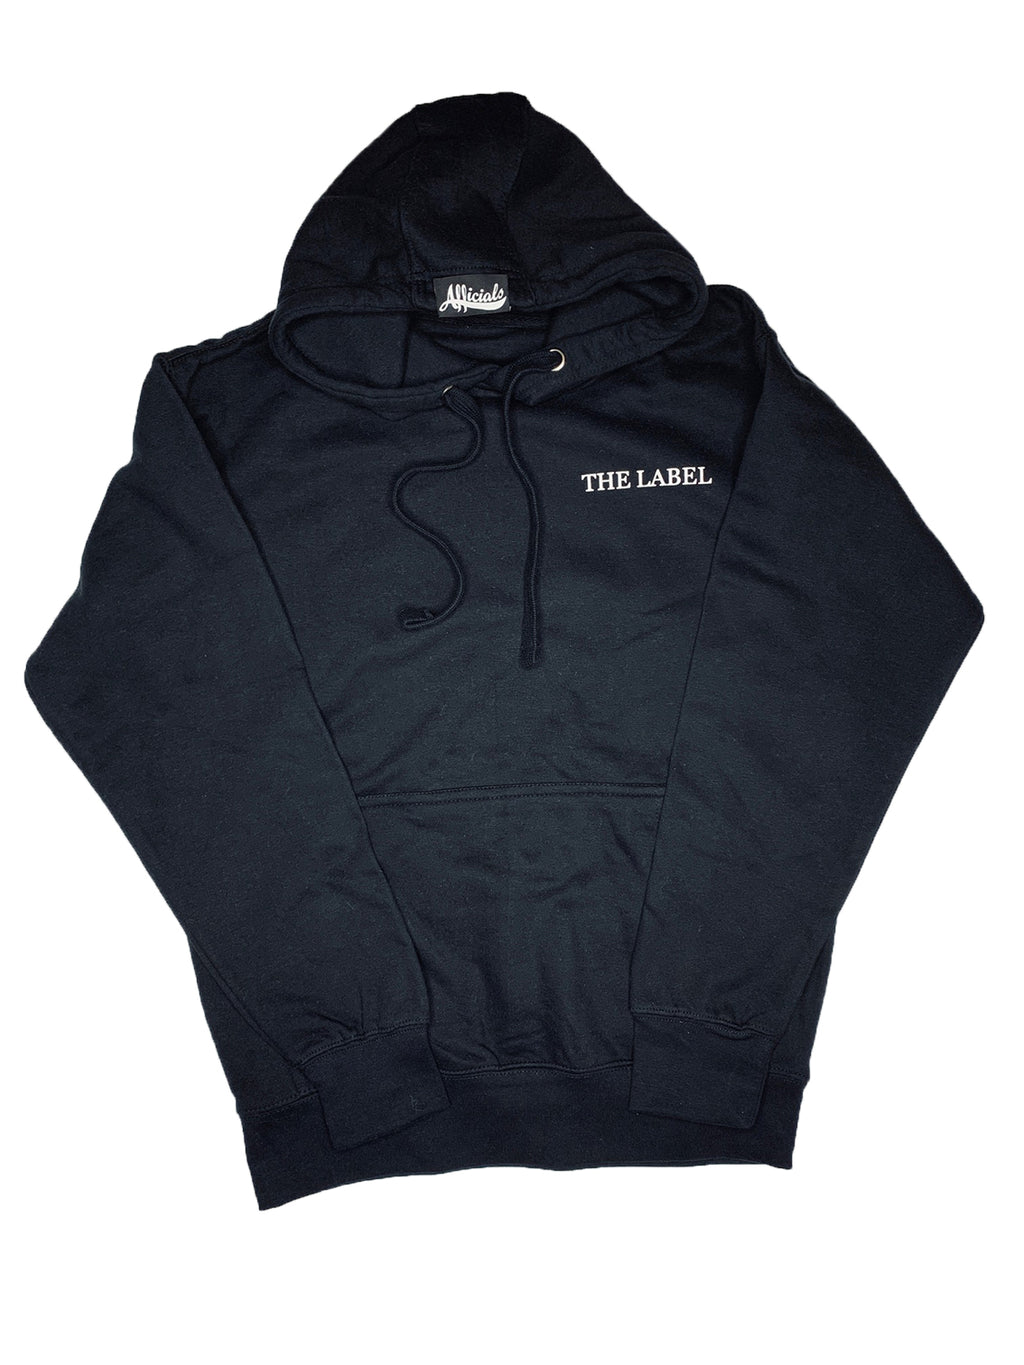 Afficials Hoodie BLACK/WHITE [Distressed Print]